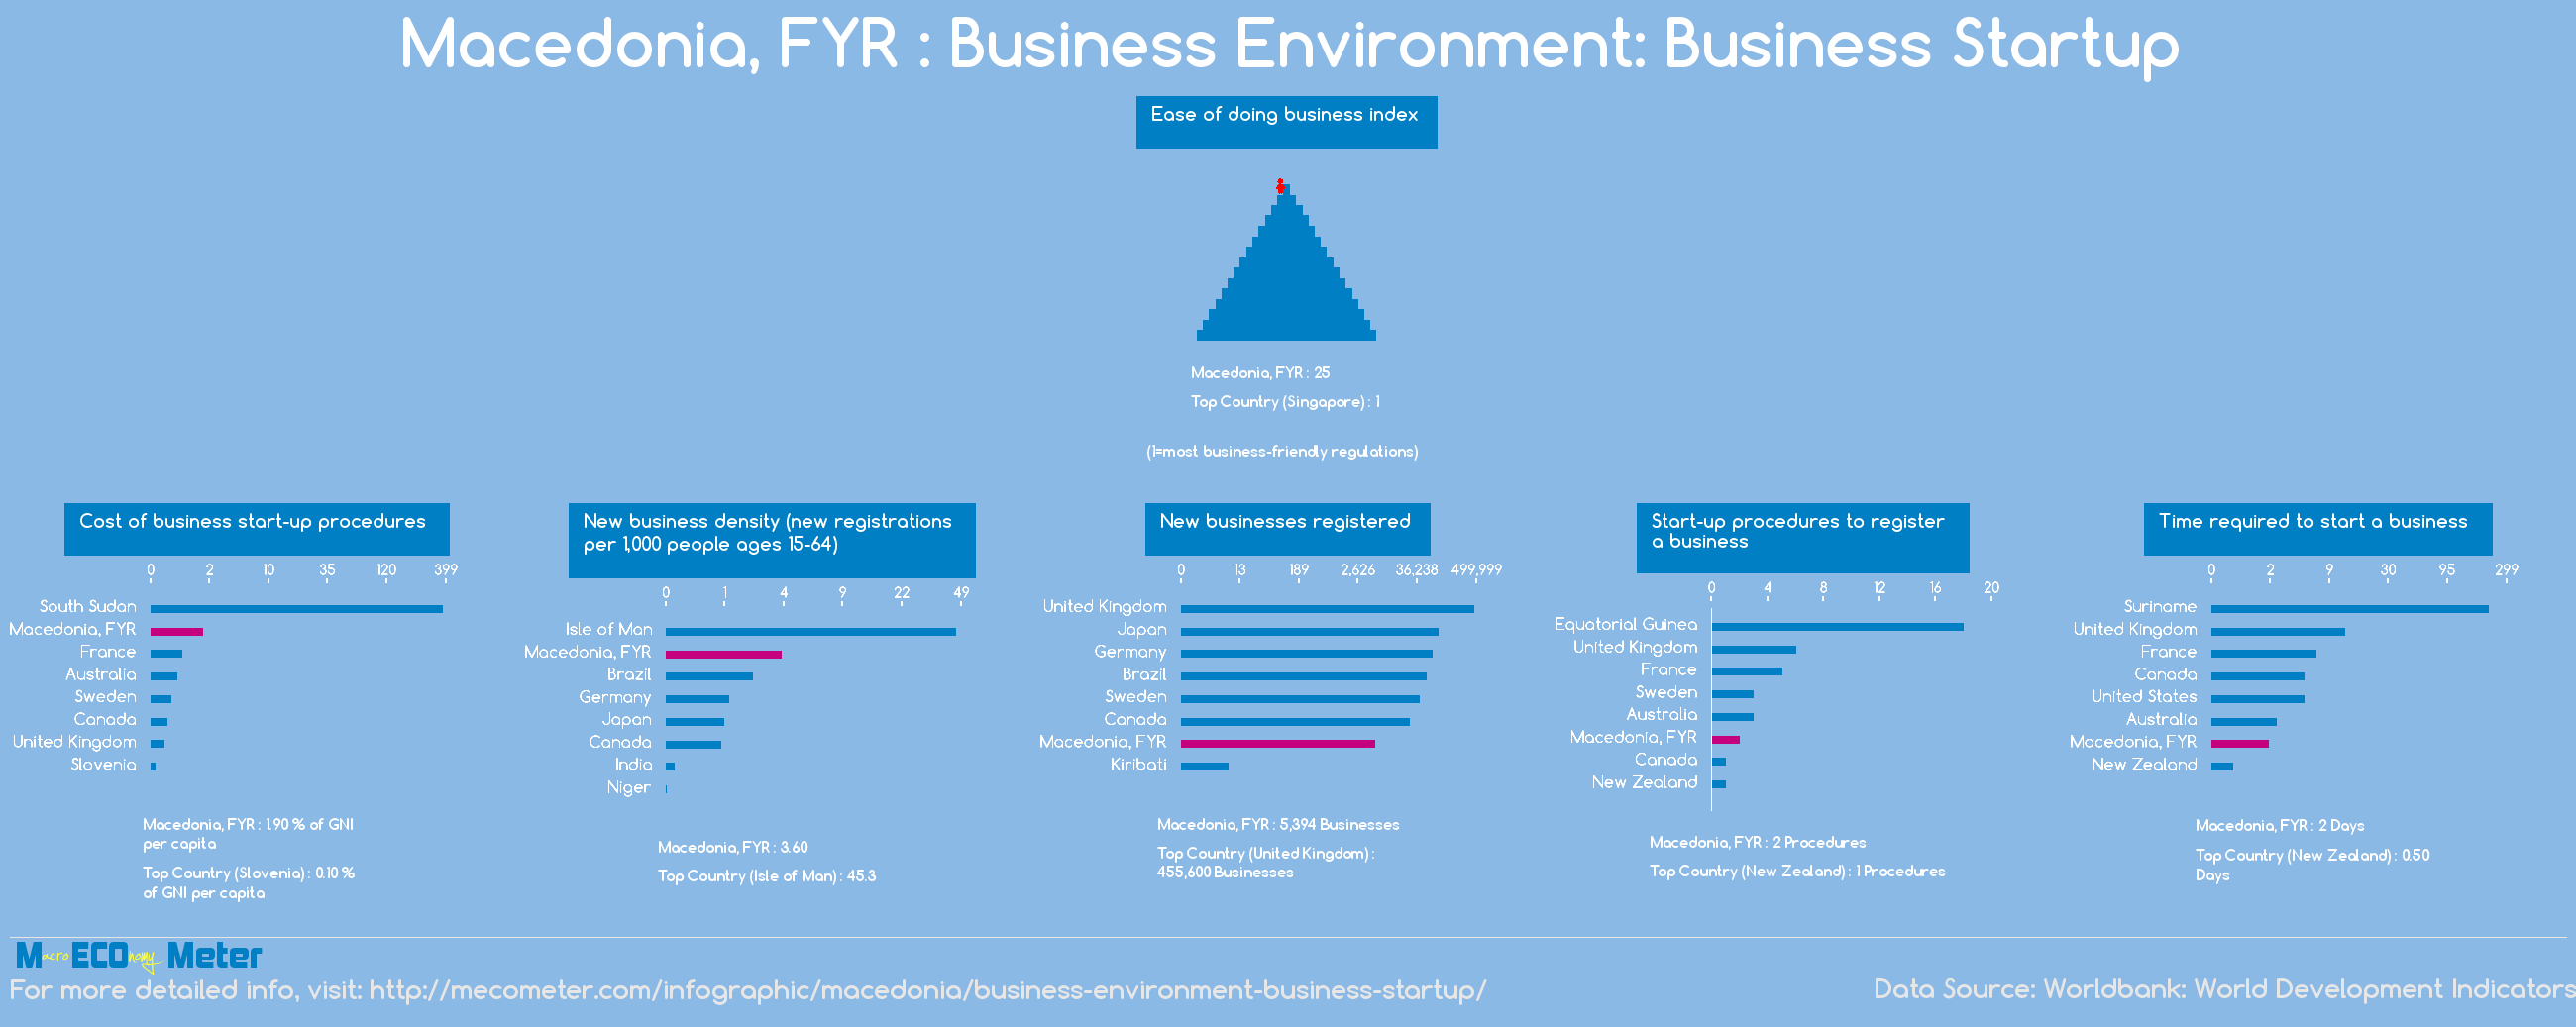 Macedonia, FYR : Business Environment: Business Startup